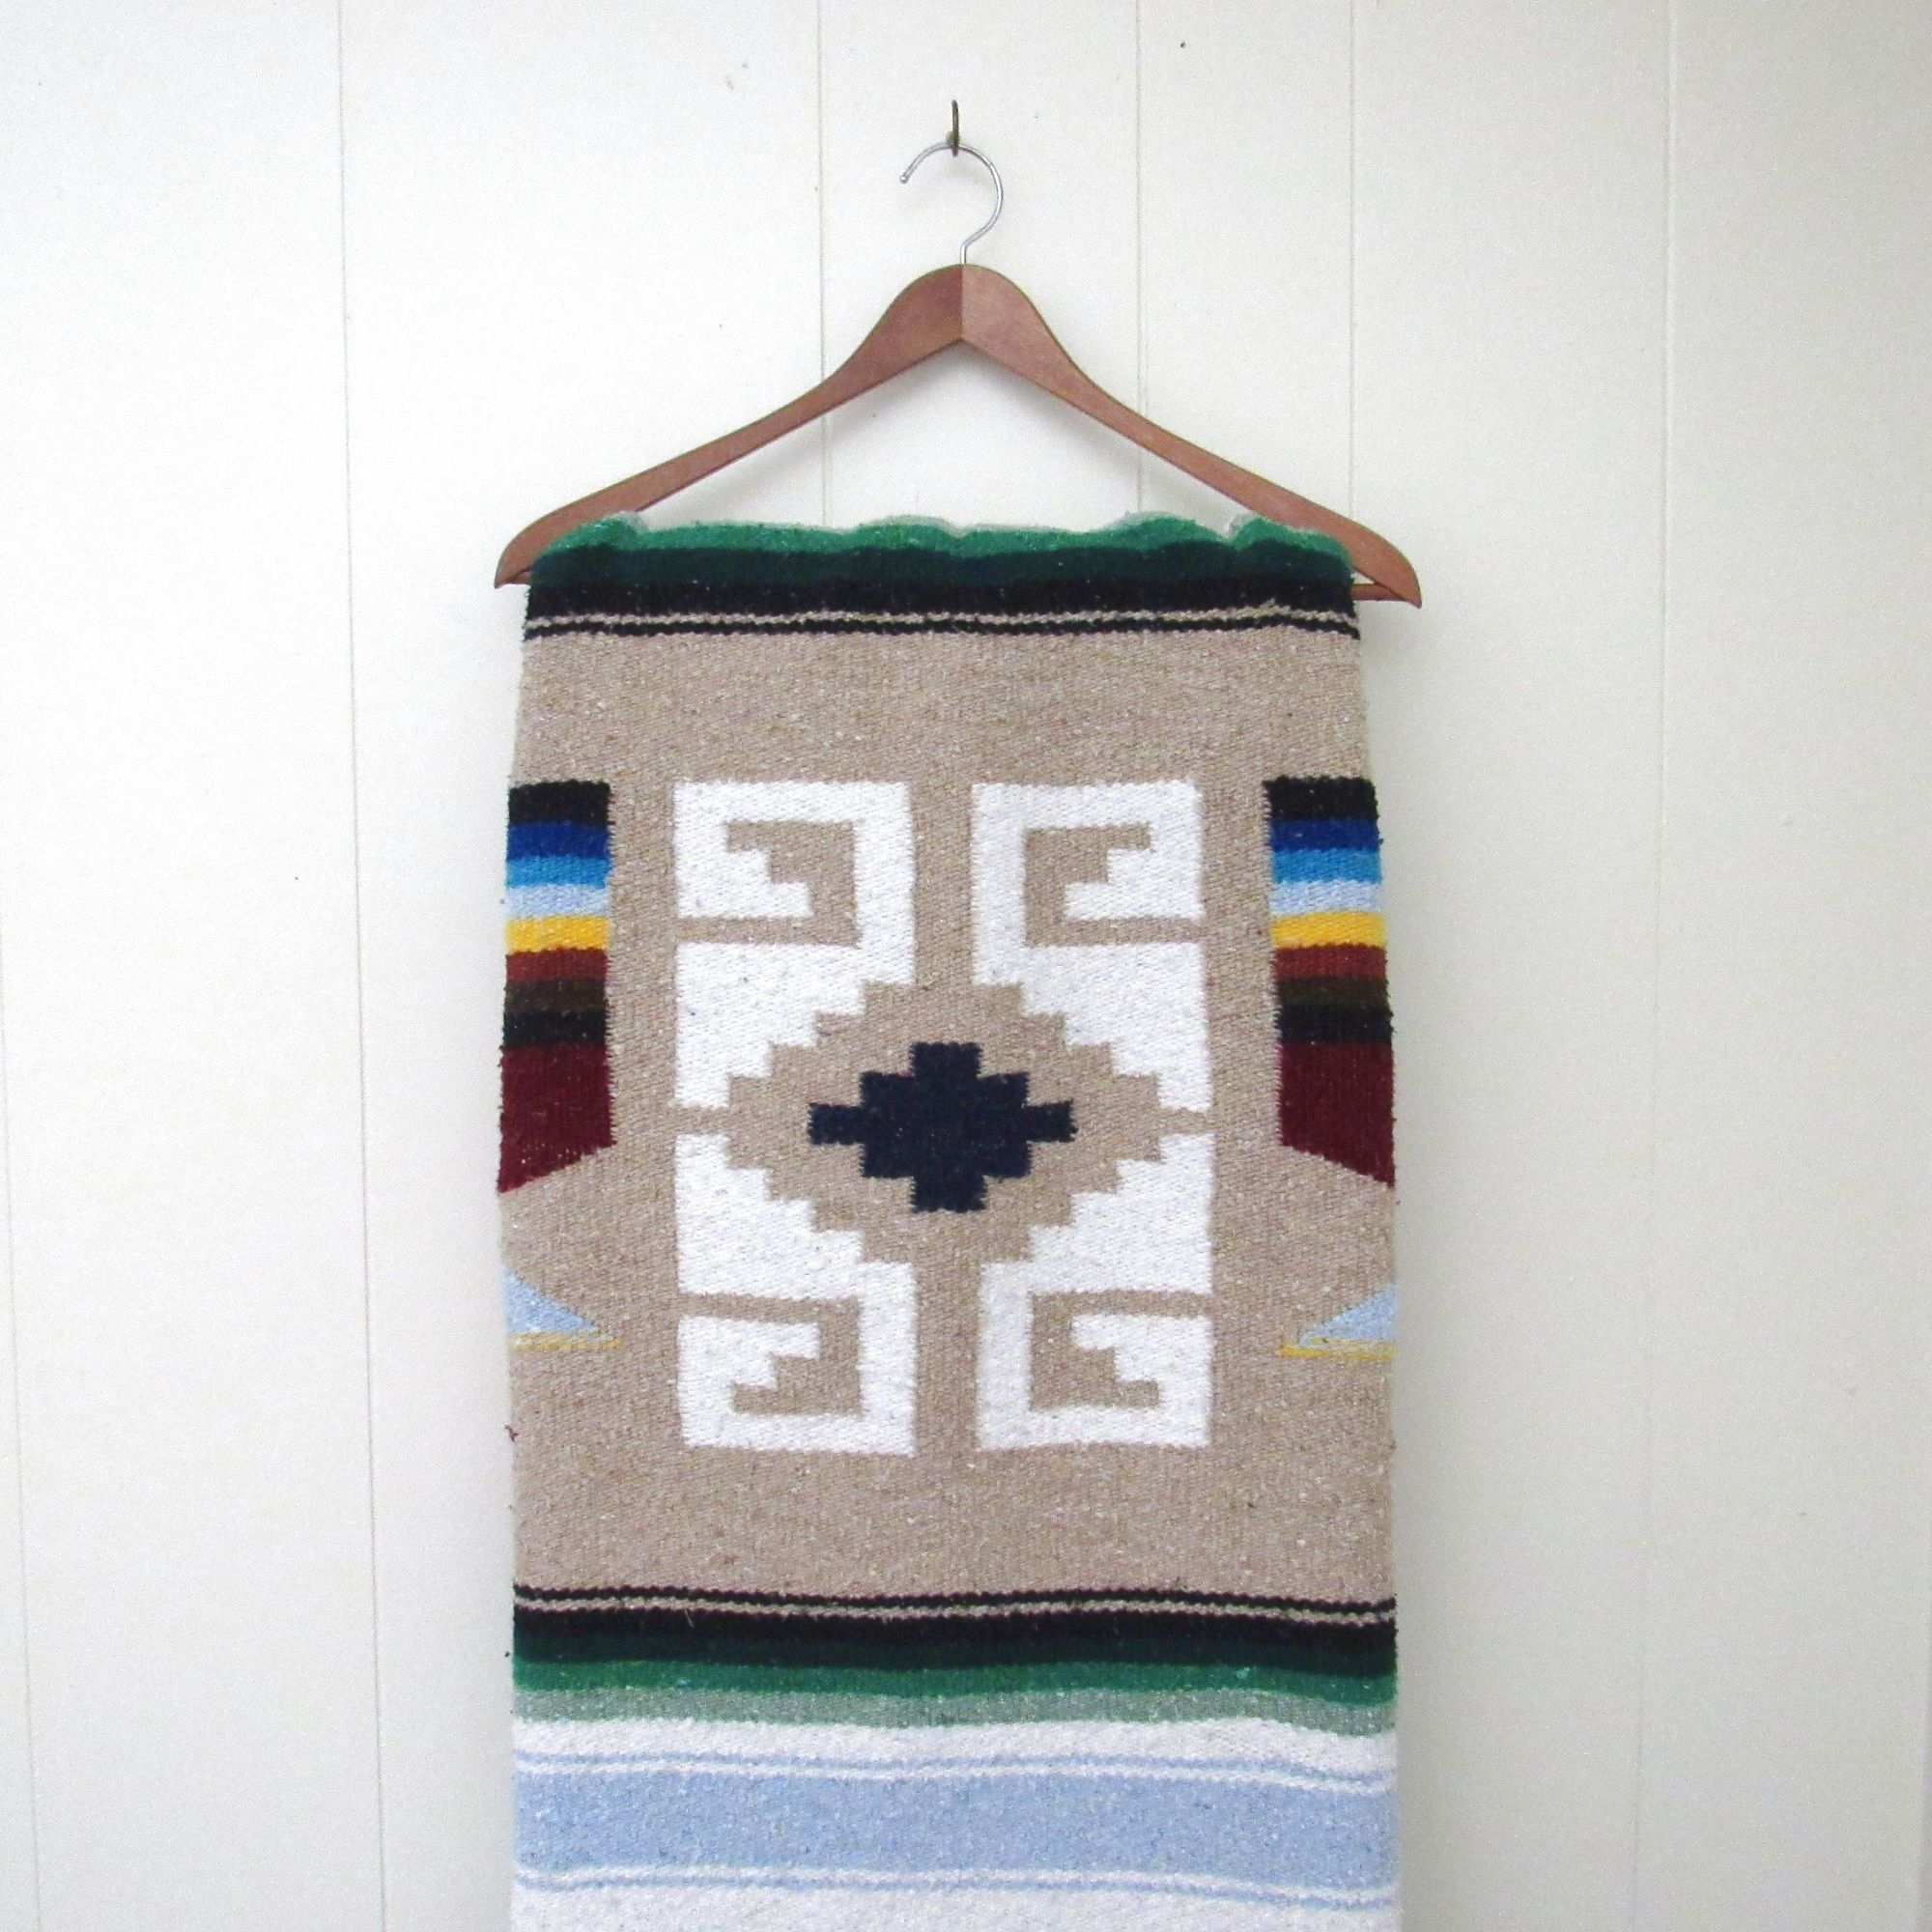 Vintage Mexican Blanket – 90s Woven Cotton Blend Southwest Inside Most Recent Blended Fabric Southwestern Bohemian Wall Hangings (View 13 of 20)